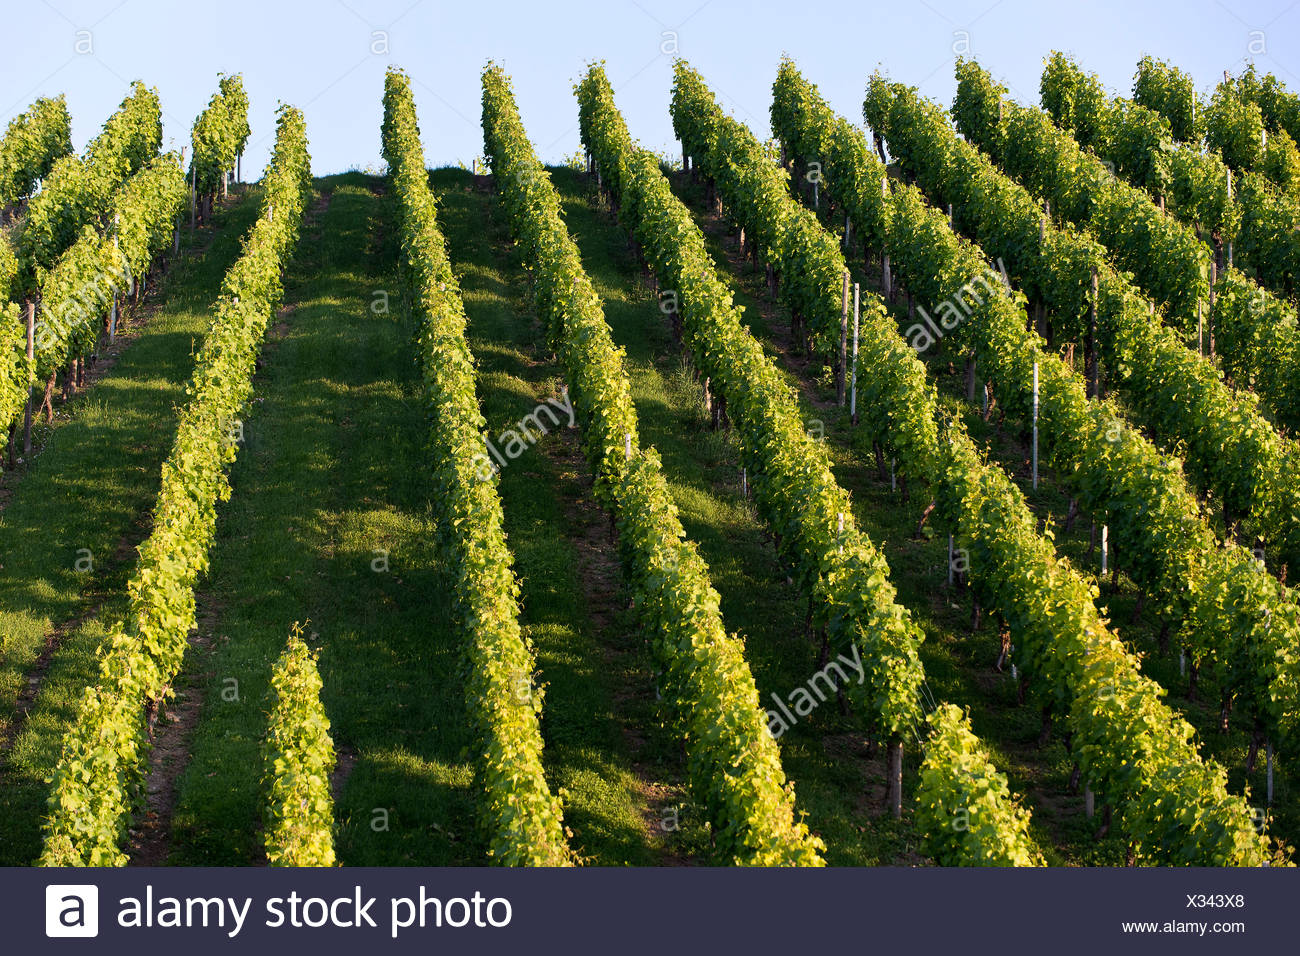 Grape vines, vineyard, Pragsattel, Stuttgart, Baden-Wuerttemberg - Stock Image